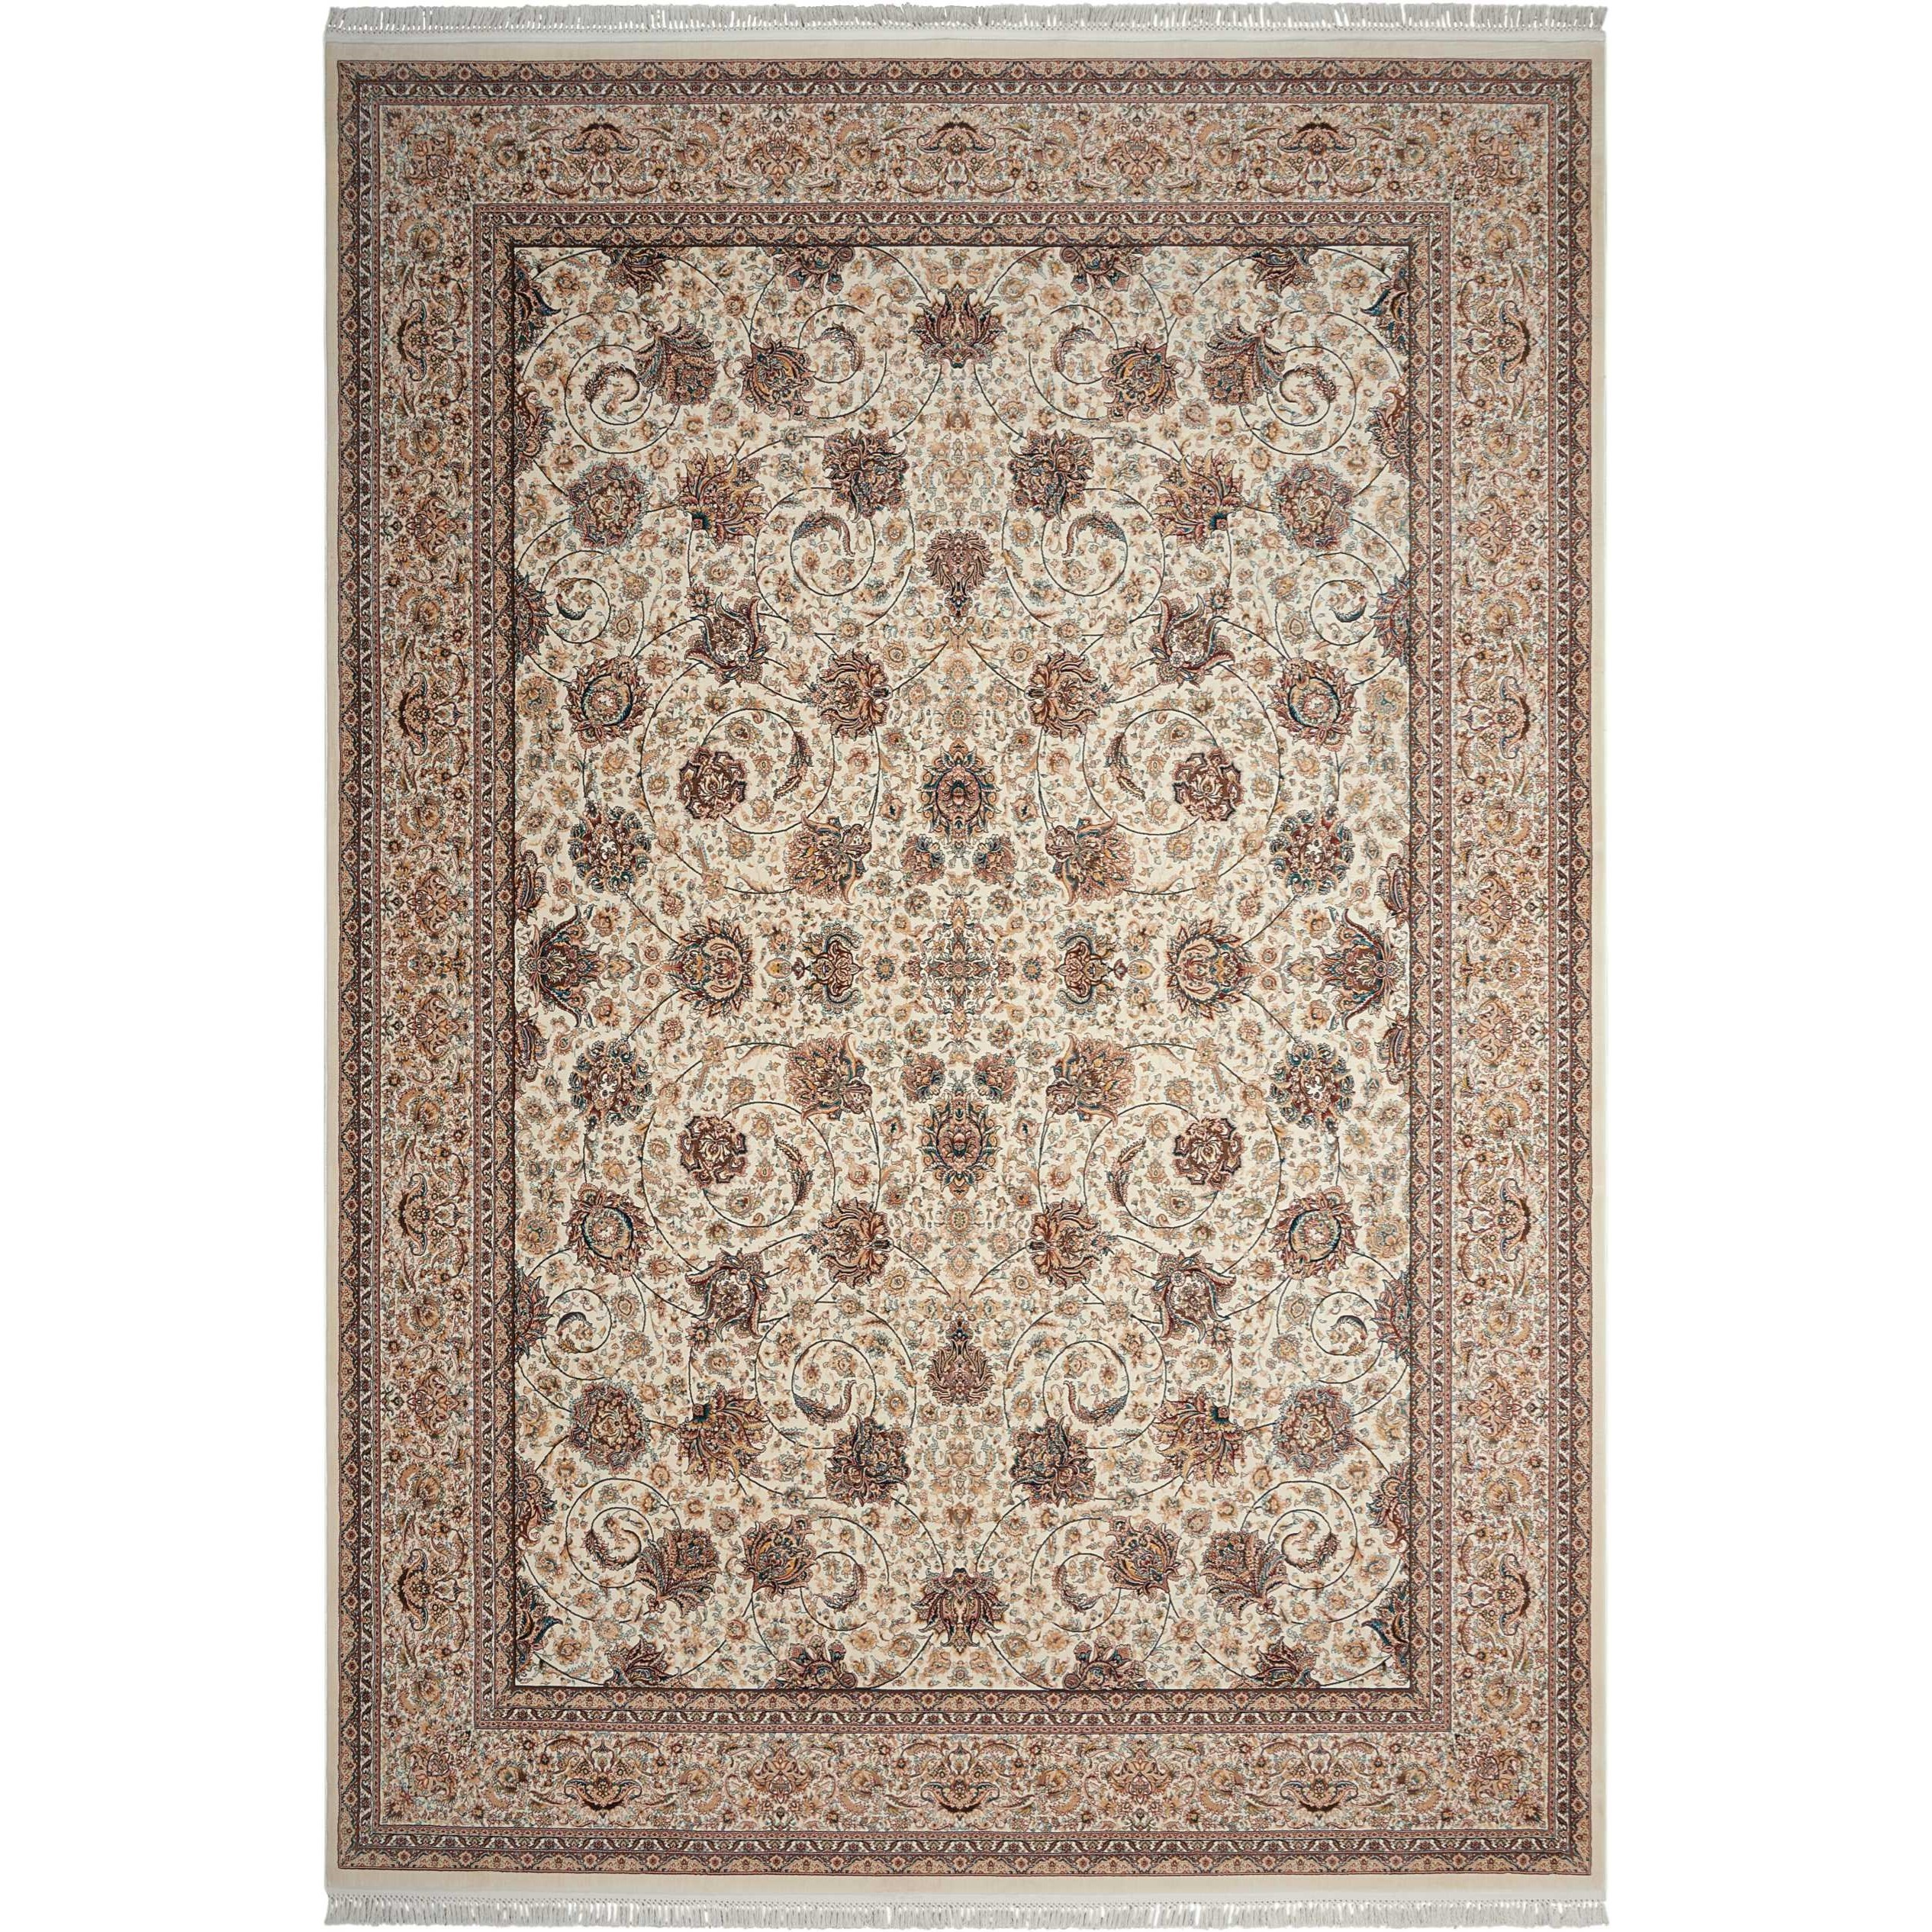 "Persian Palace 3'11"" X 5'11"" Cream Rug by Nourison at Sprintz Furniture"